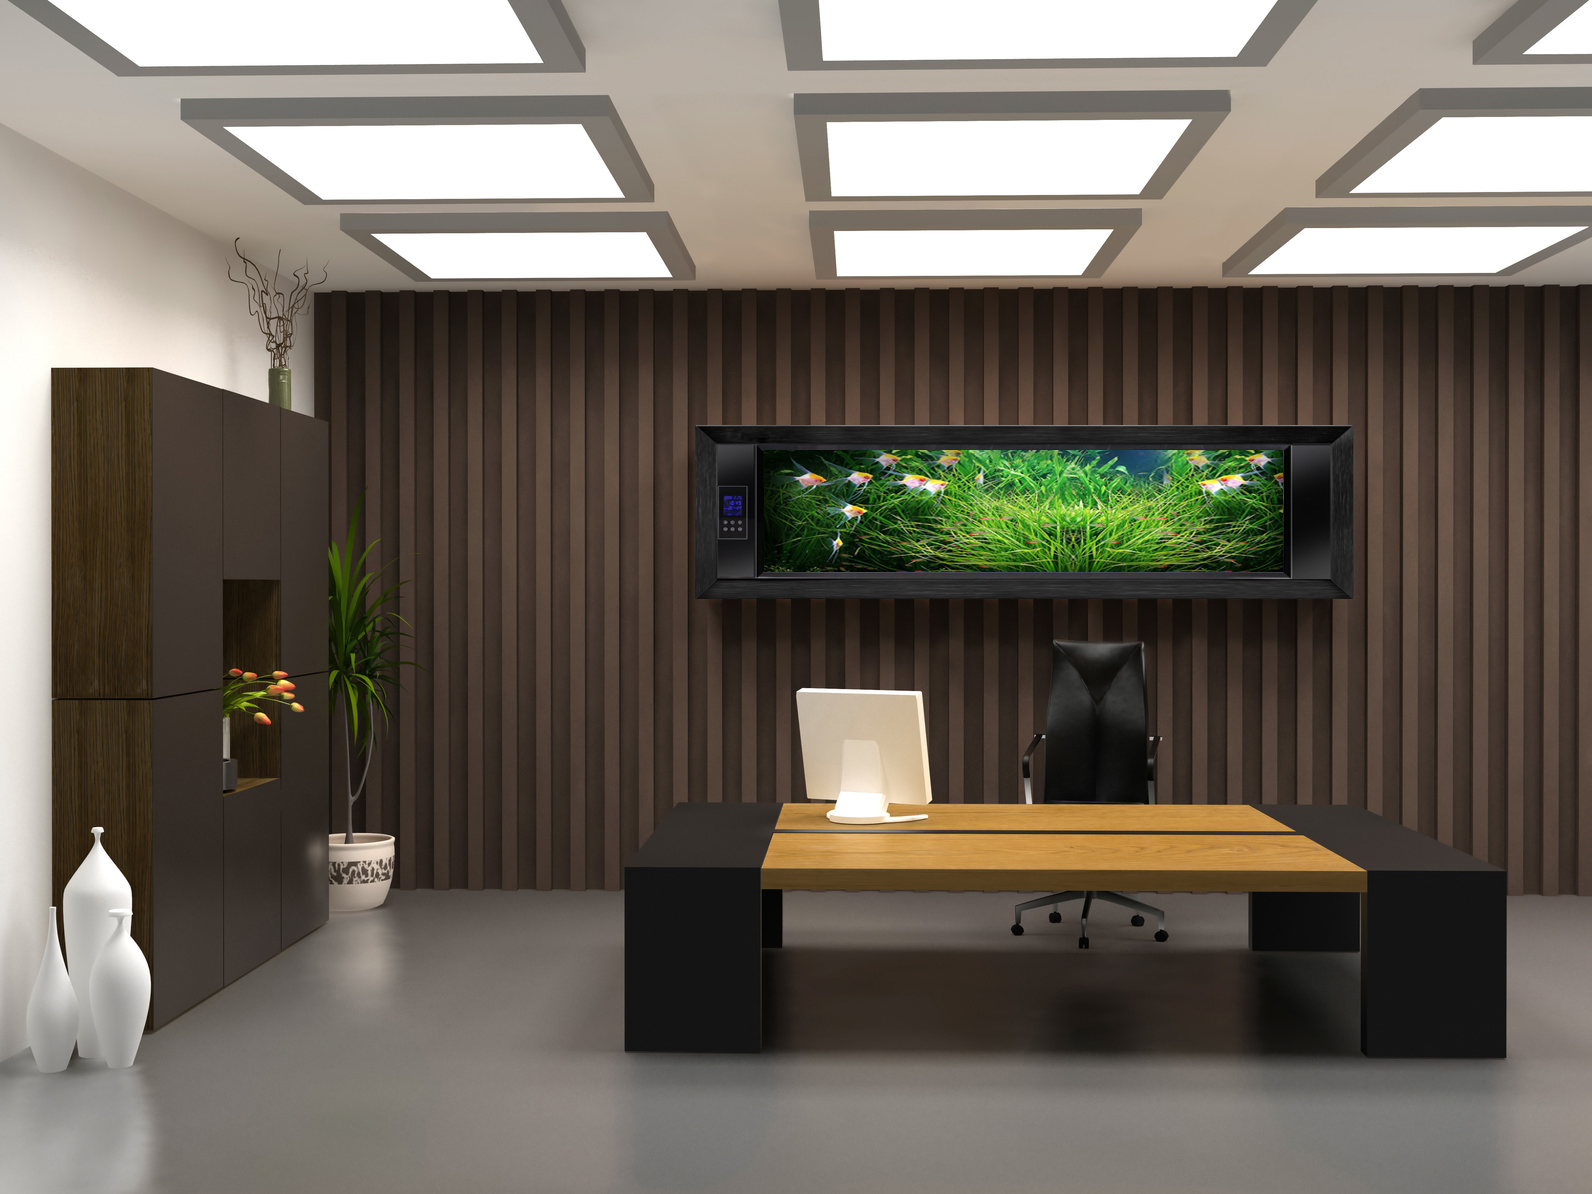 Elegant ceo office design bellisima - Office interior ...